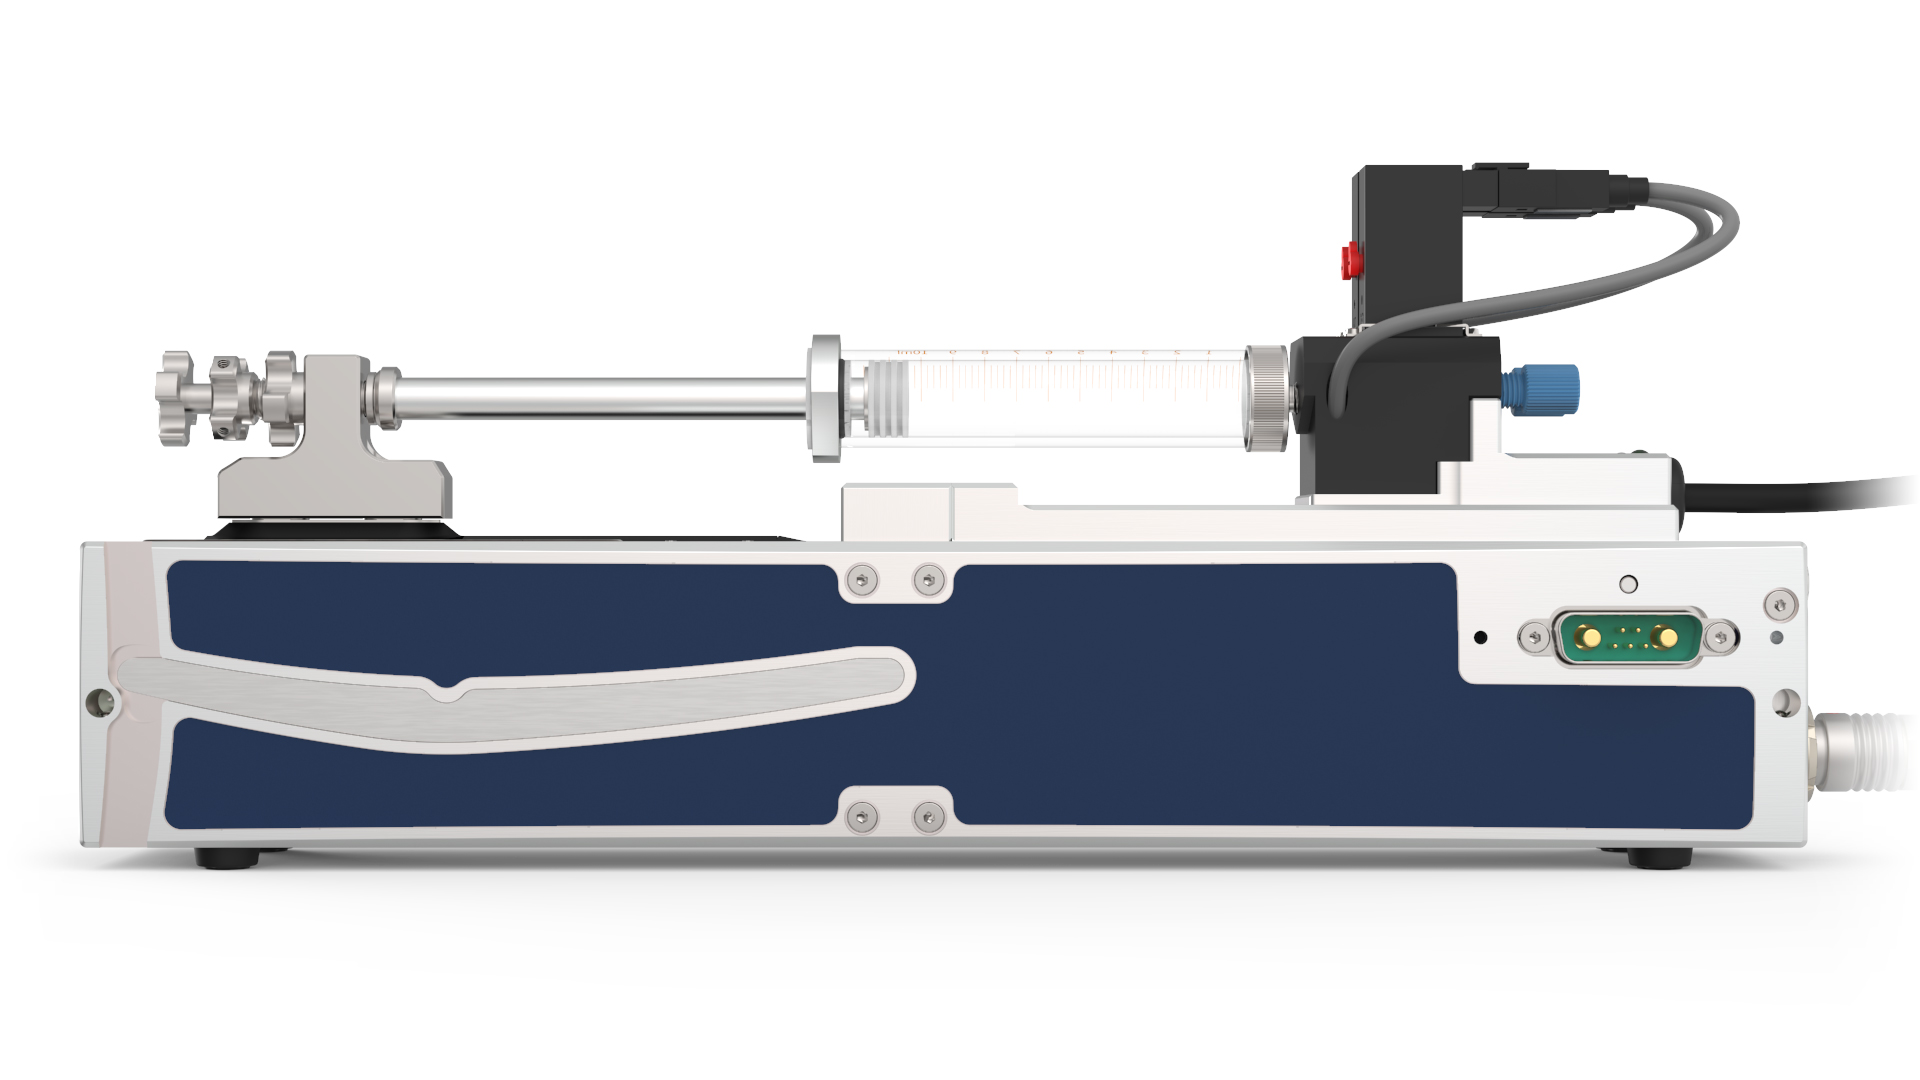 Nemesys S with glass syringe, side view